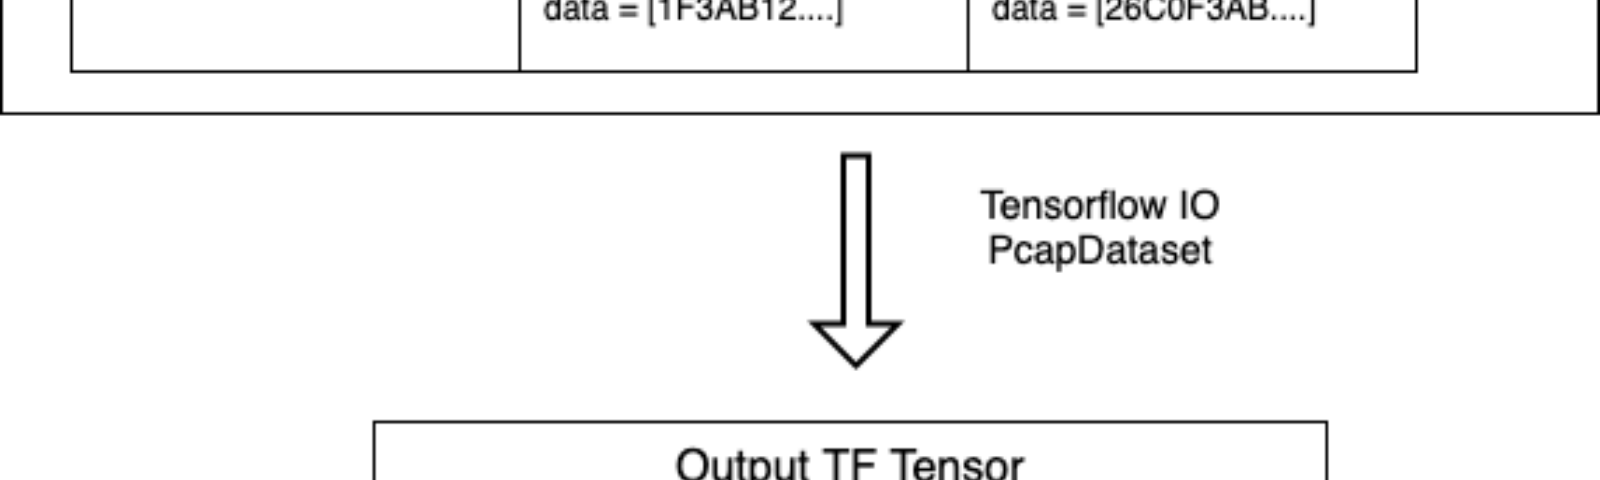 How to build a custom Dataset for Tensorflow - Towards Data Science